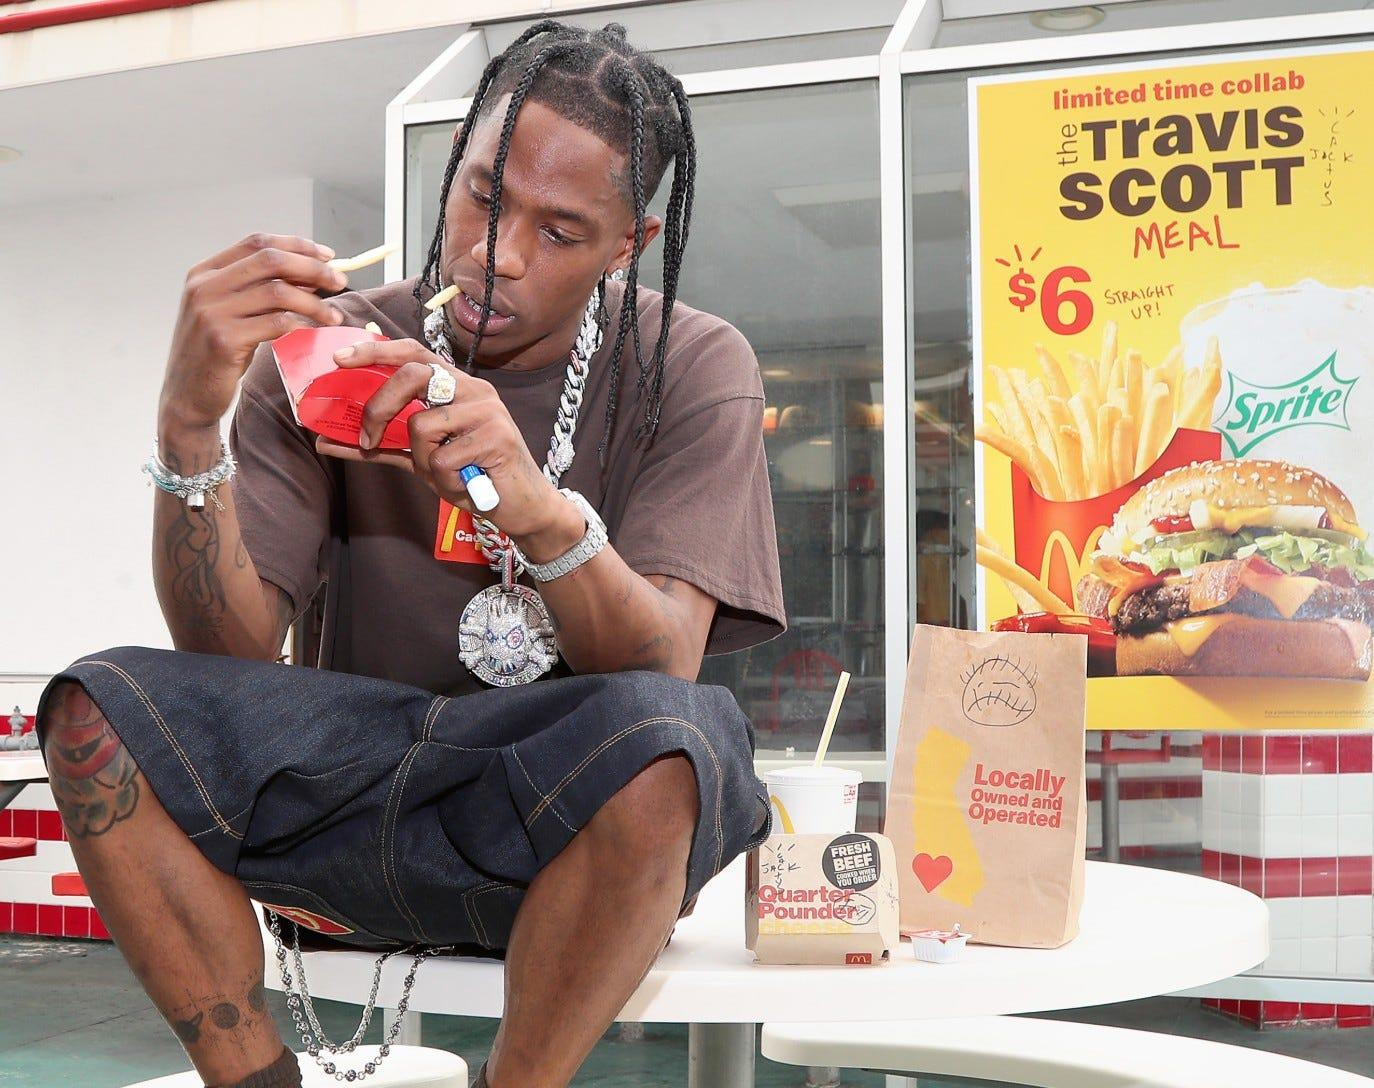 McDonald's popular Travis Scott Meal now available for $6 with fast-food chain's mobile app through Oct. 4